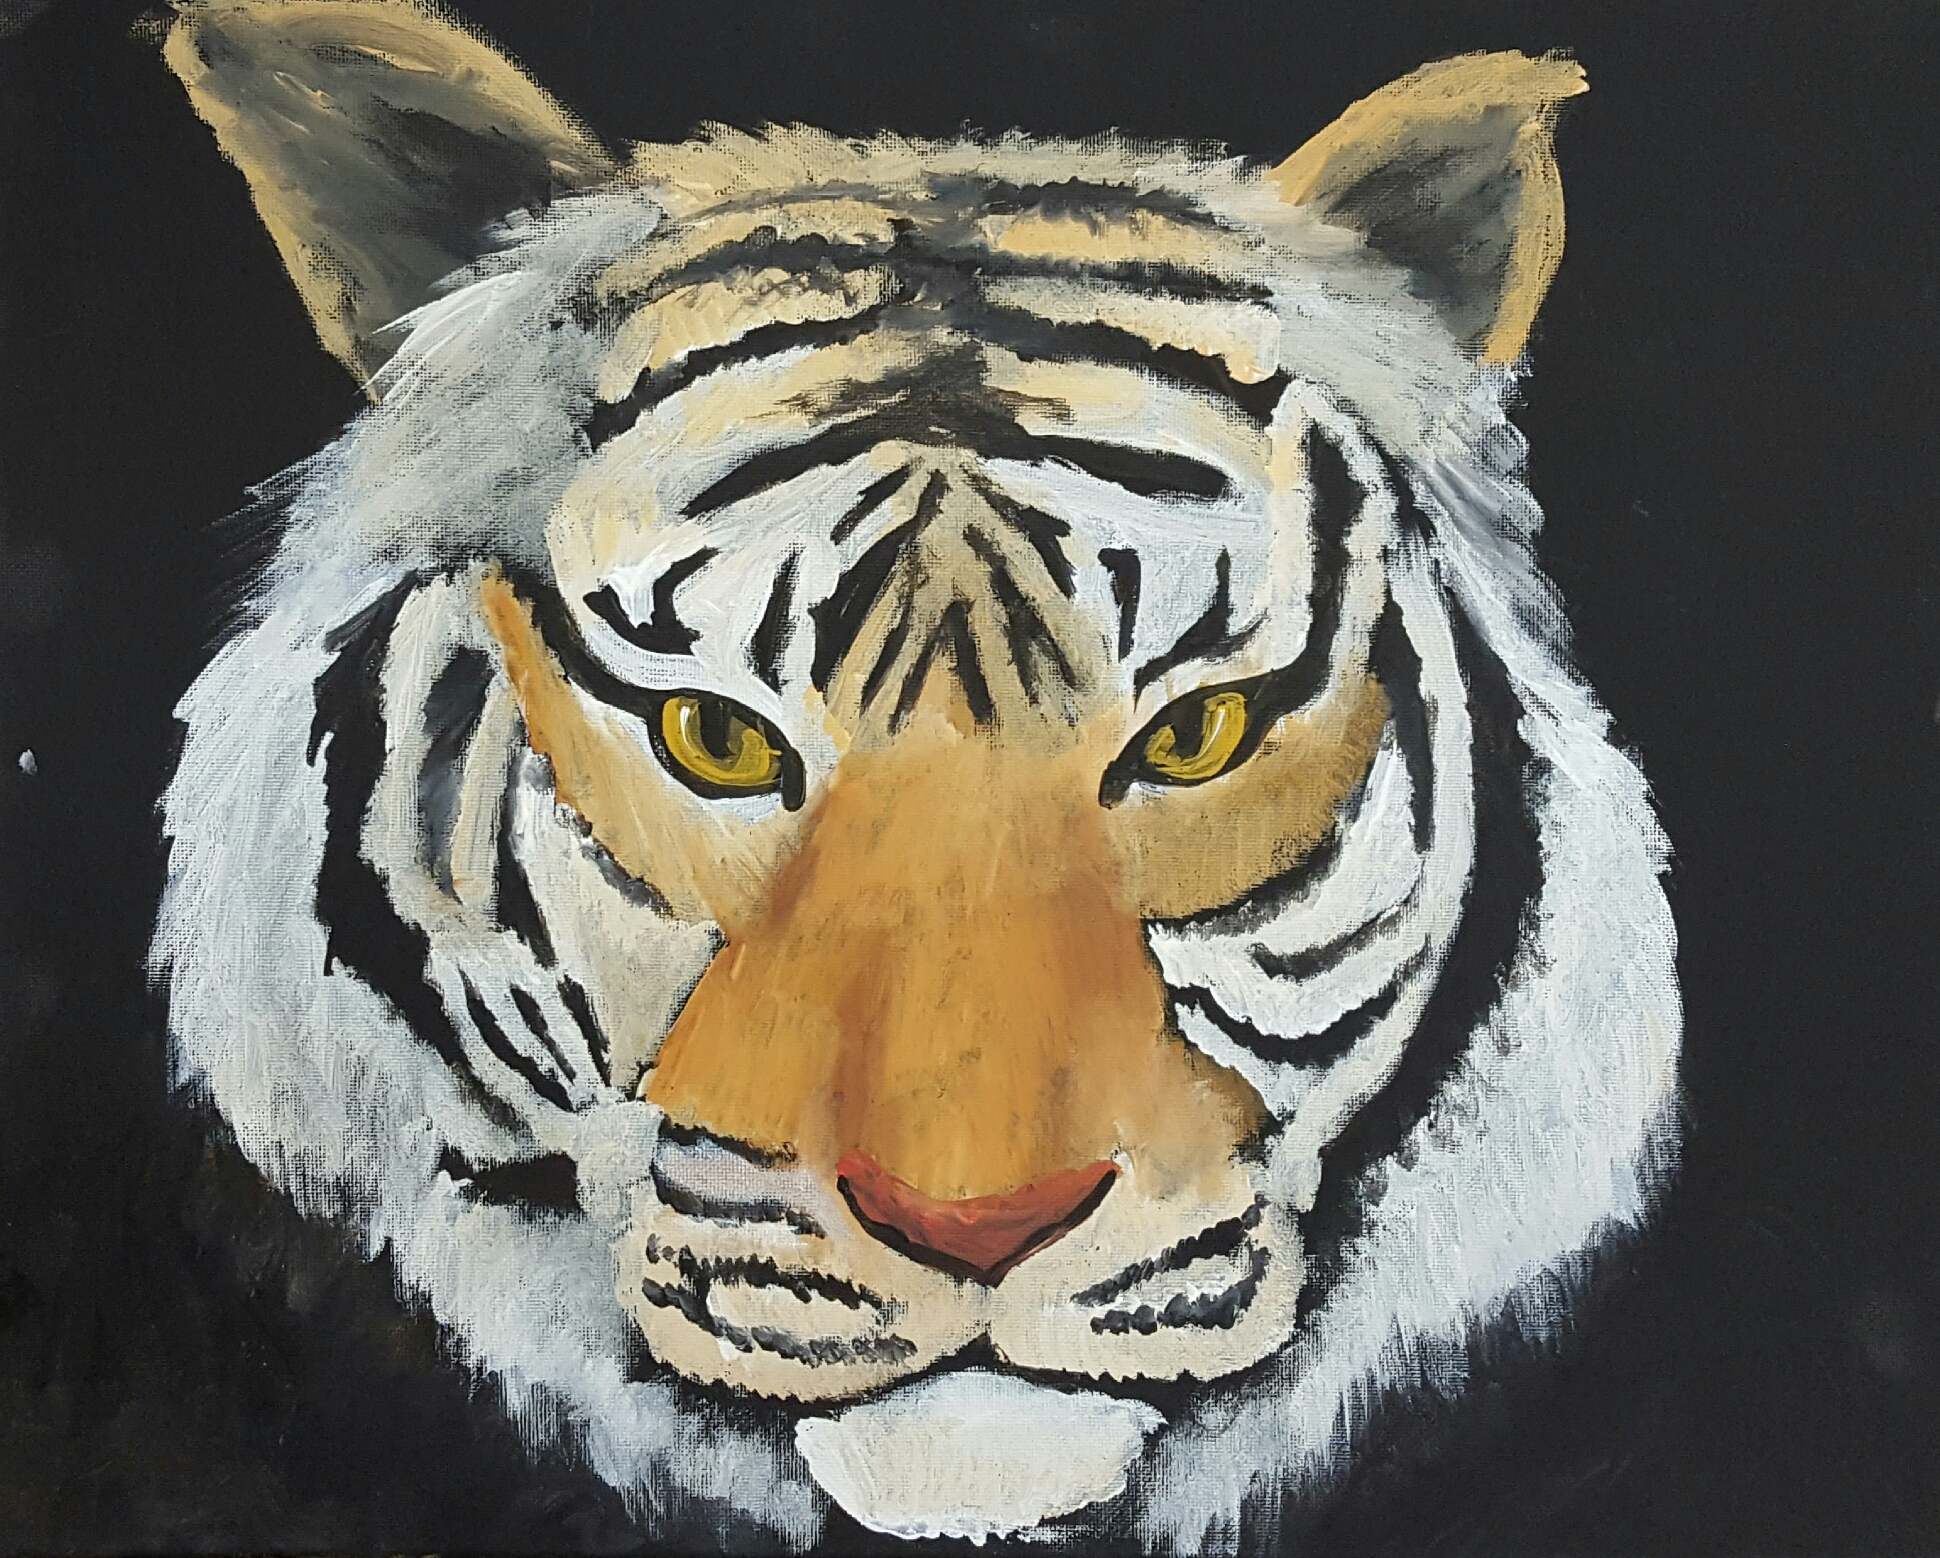 Tiger- 2 hours